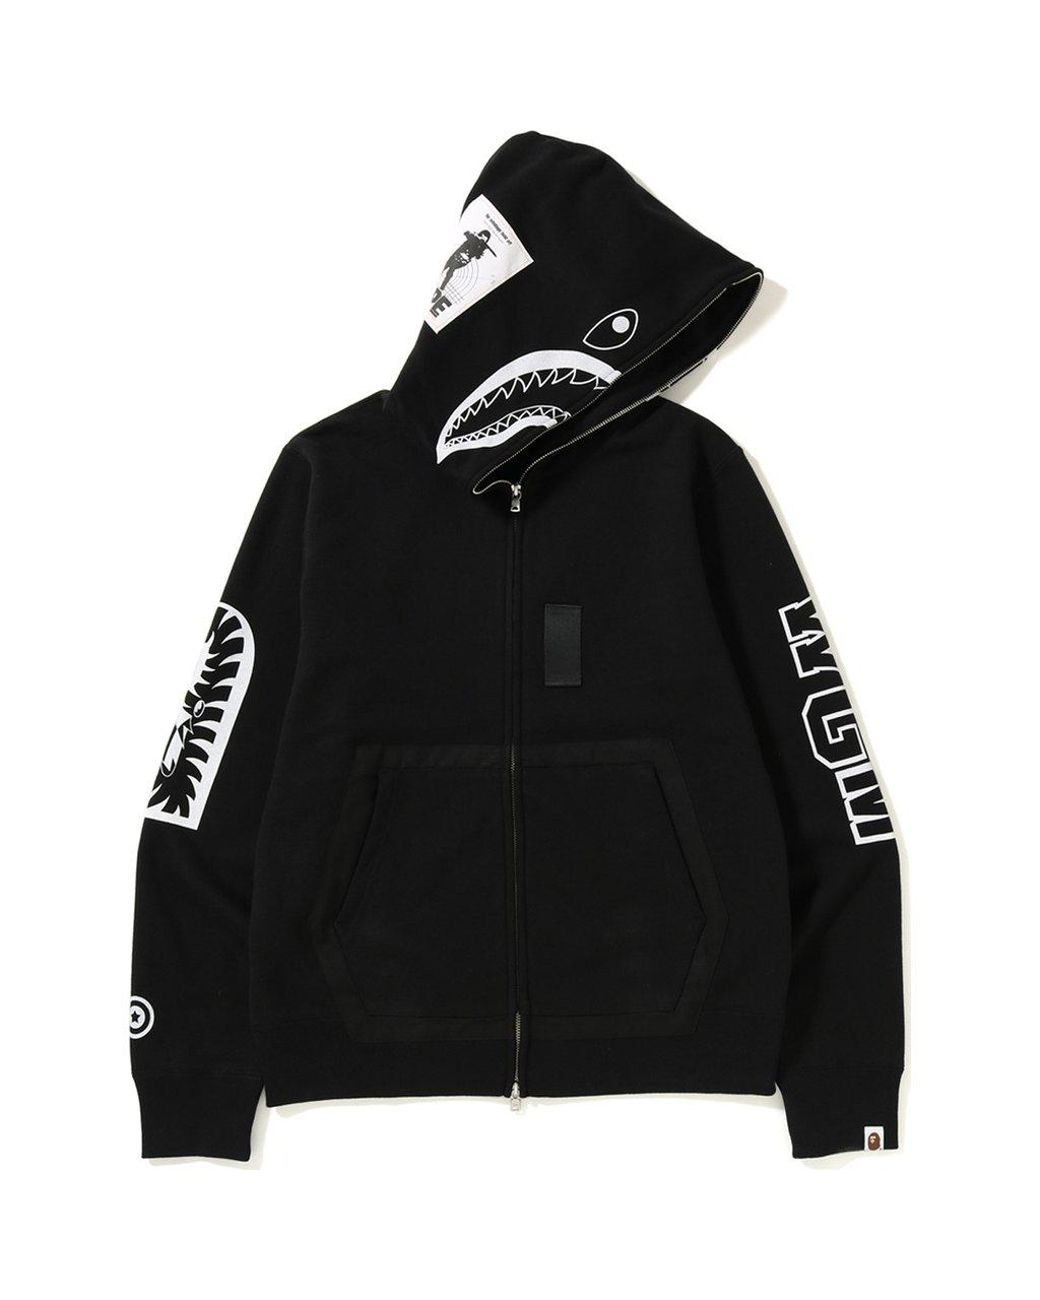 65bfbf1d A Bathing Ape Military Shark Full Zip Hoodie Black in Black for Men - Lyst